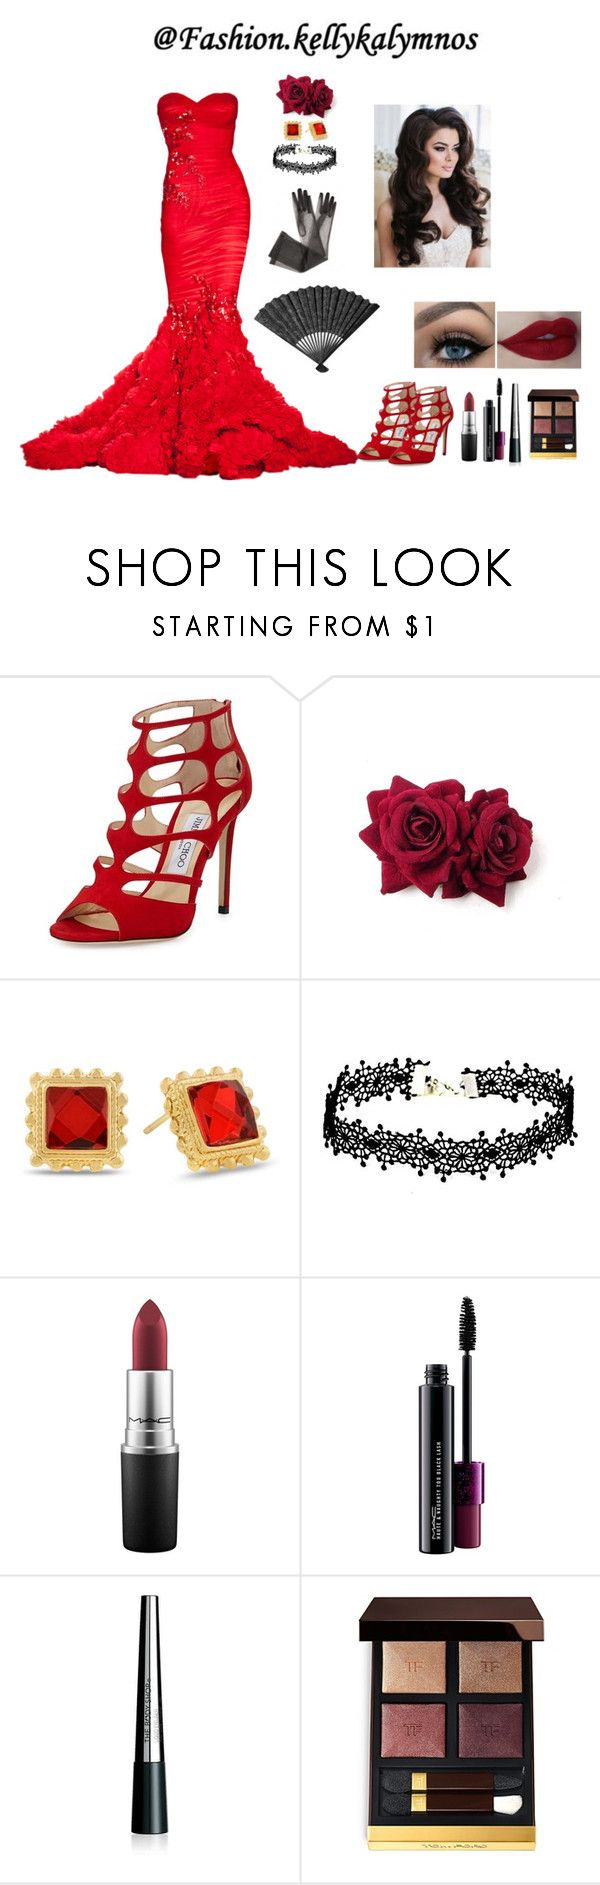 """Haute Couture"" by kellykalymnoskd on Polyvore featuring Zuhair Murad, Jimmy Choo, Adoriana, MAC Cosmetics, The Body Shop and Tom Ford"